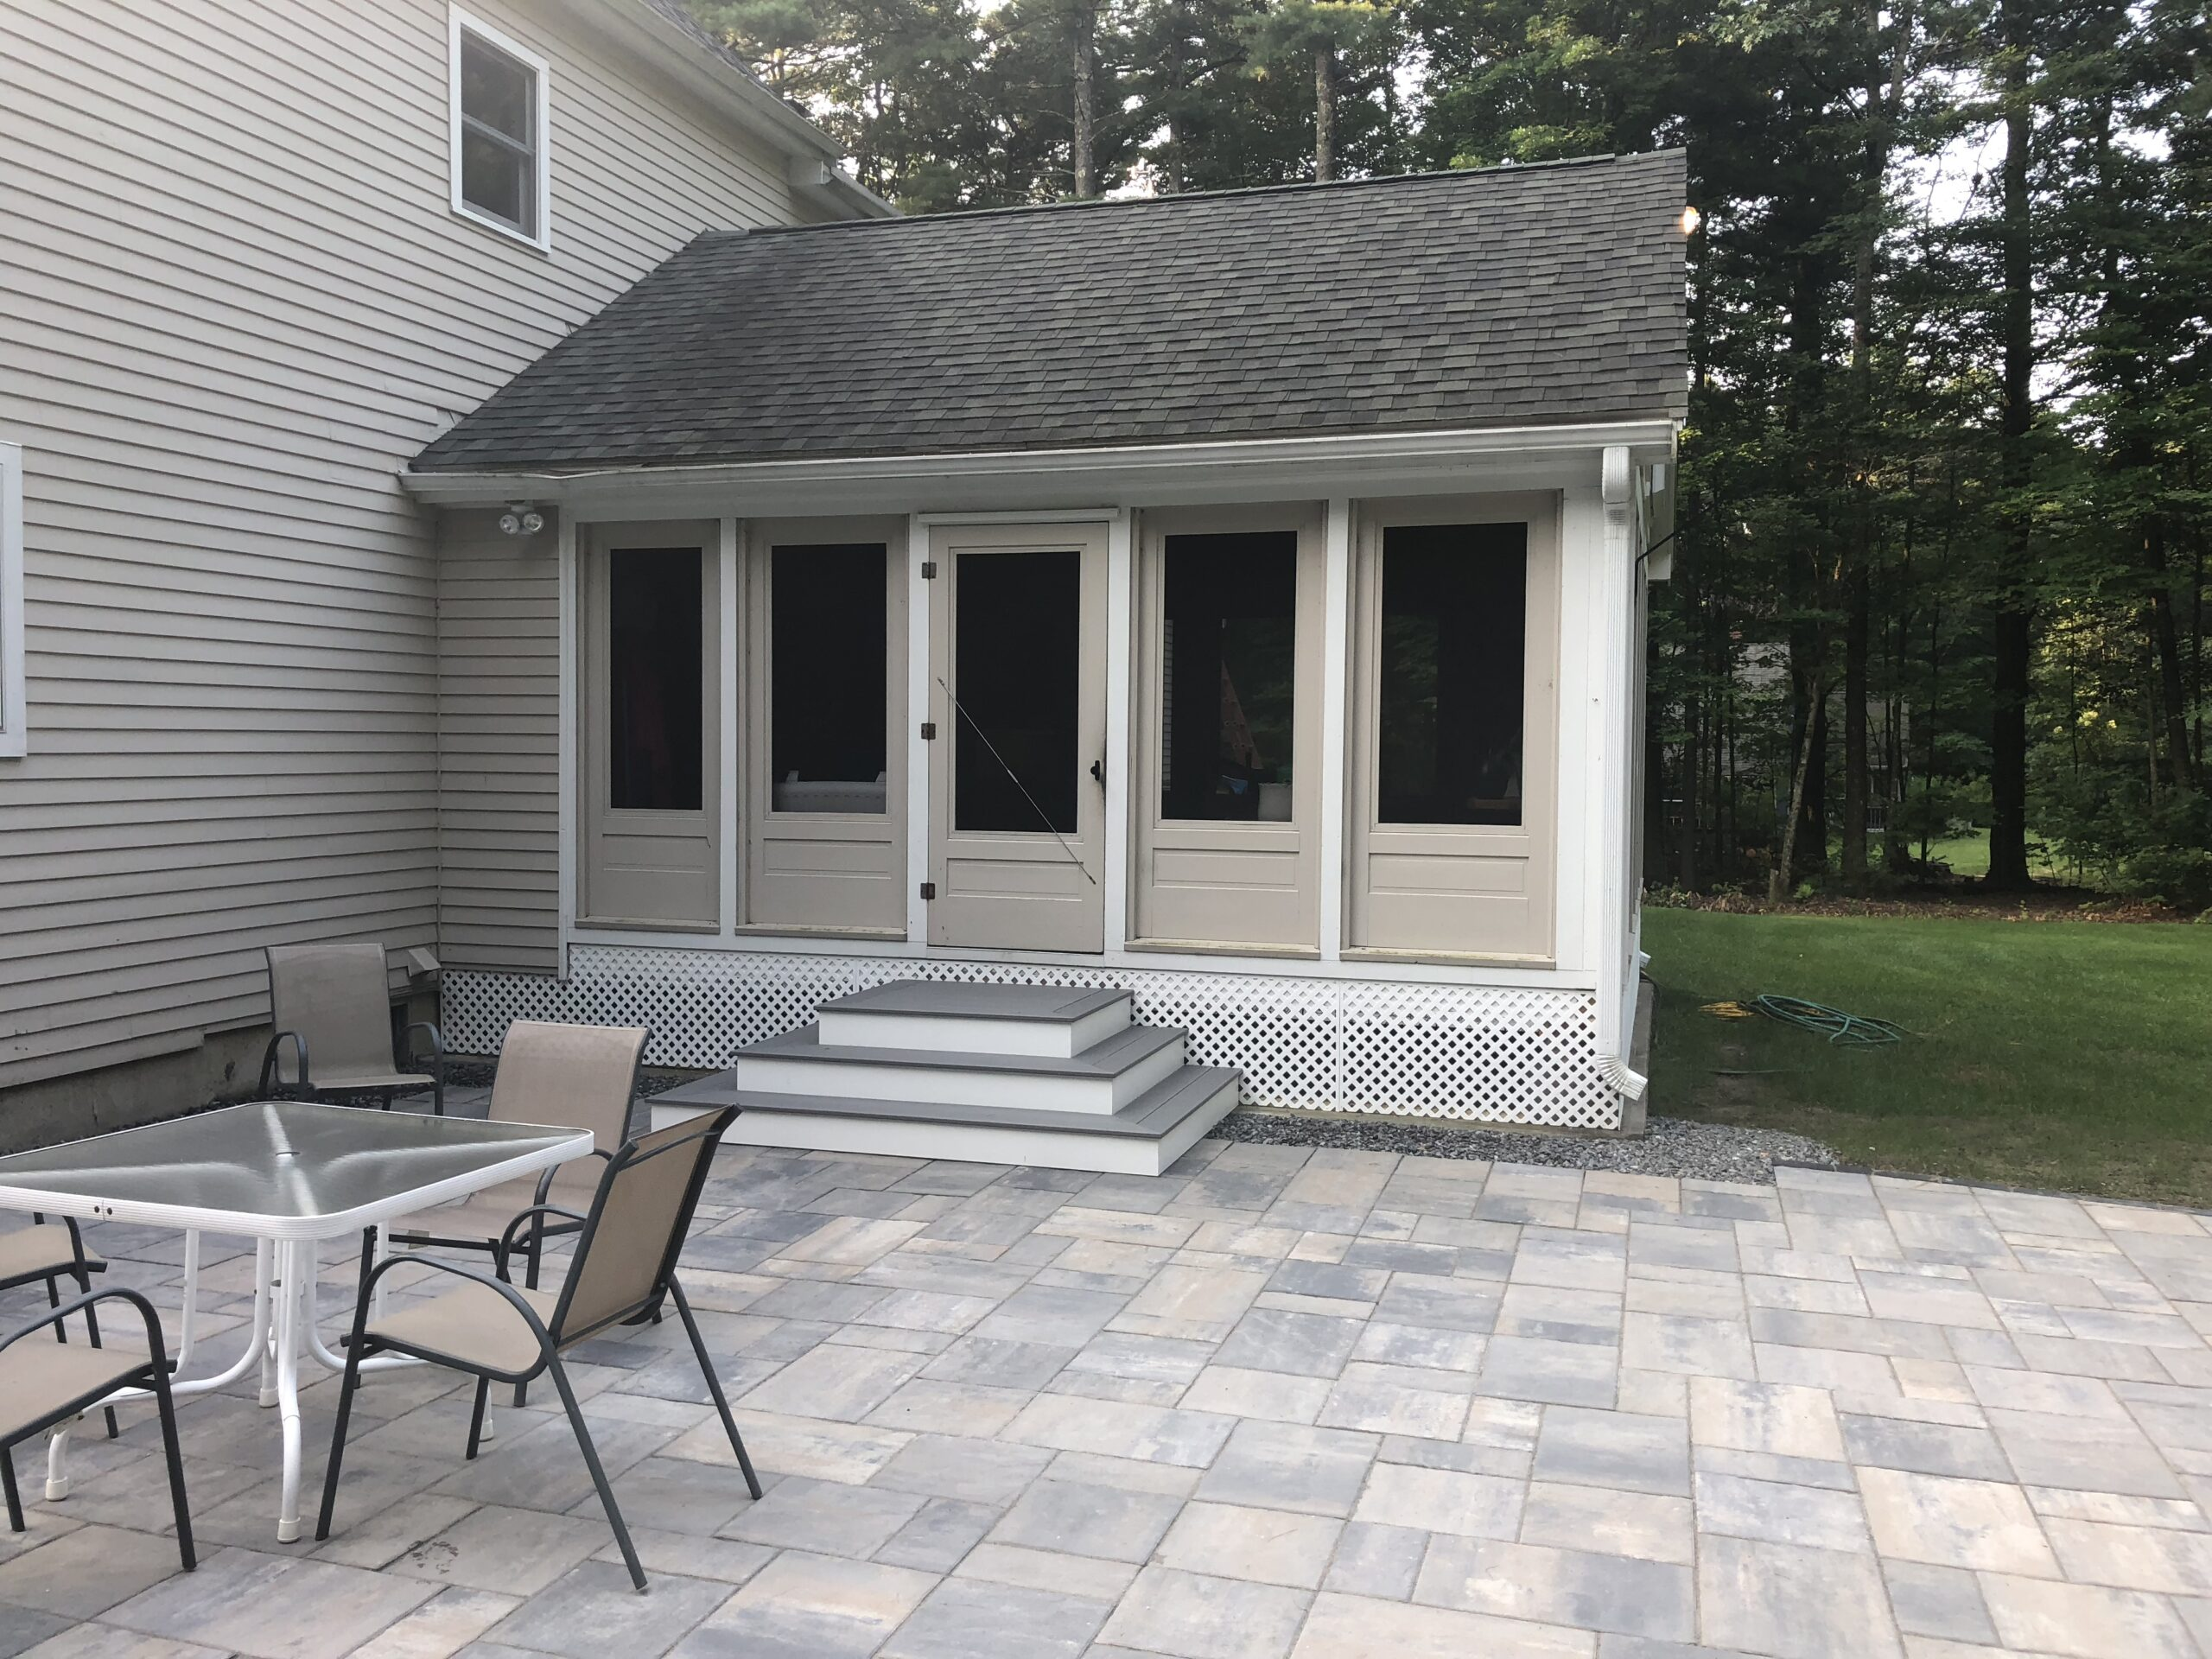 TER: SQUARE STEPS FROM PATIO TO 3 SEASON LIVING ROOM